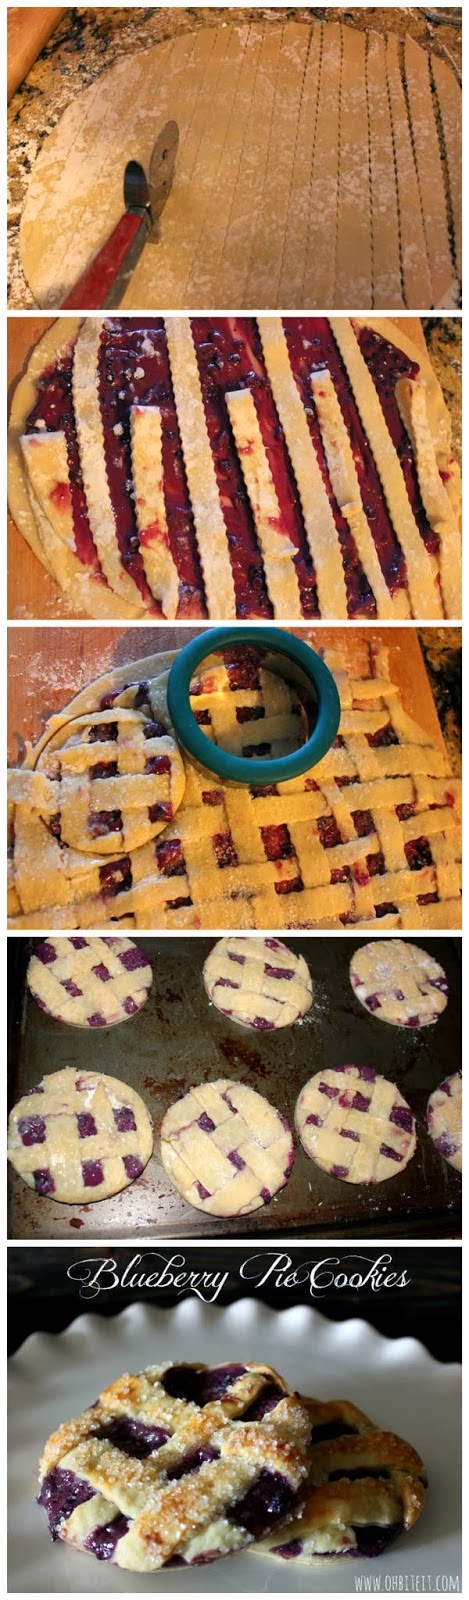 Blueberry Pie Cookies